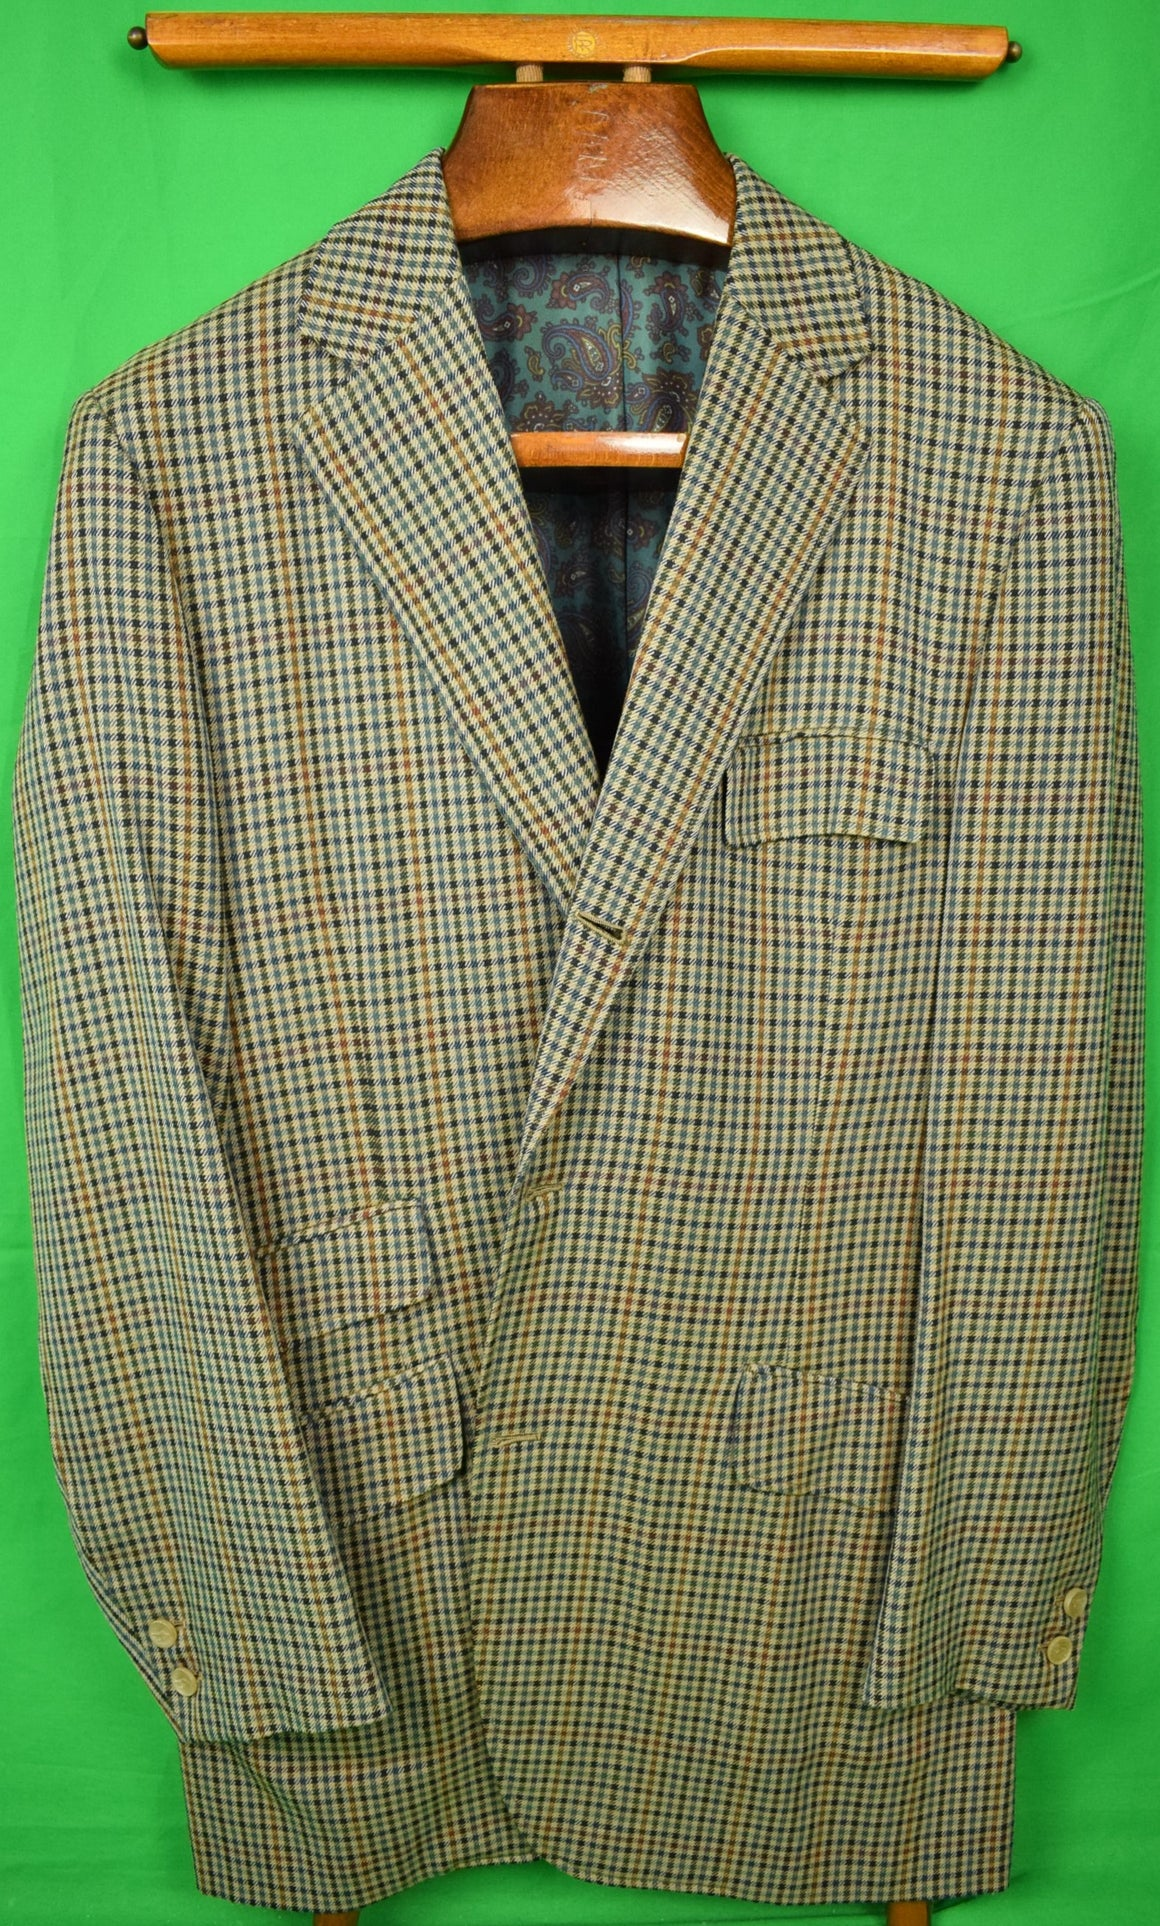 Chipp Gun Club Check Saxony Wool Sport Coat c1993 Jacket Sz: 44L